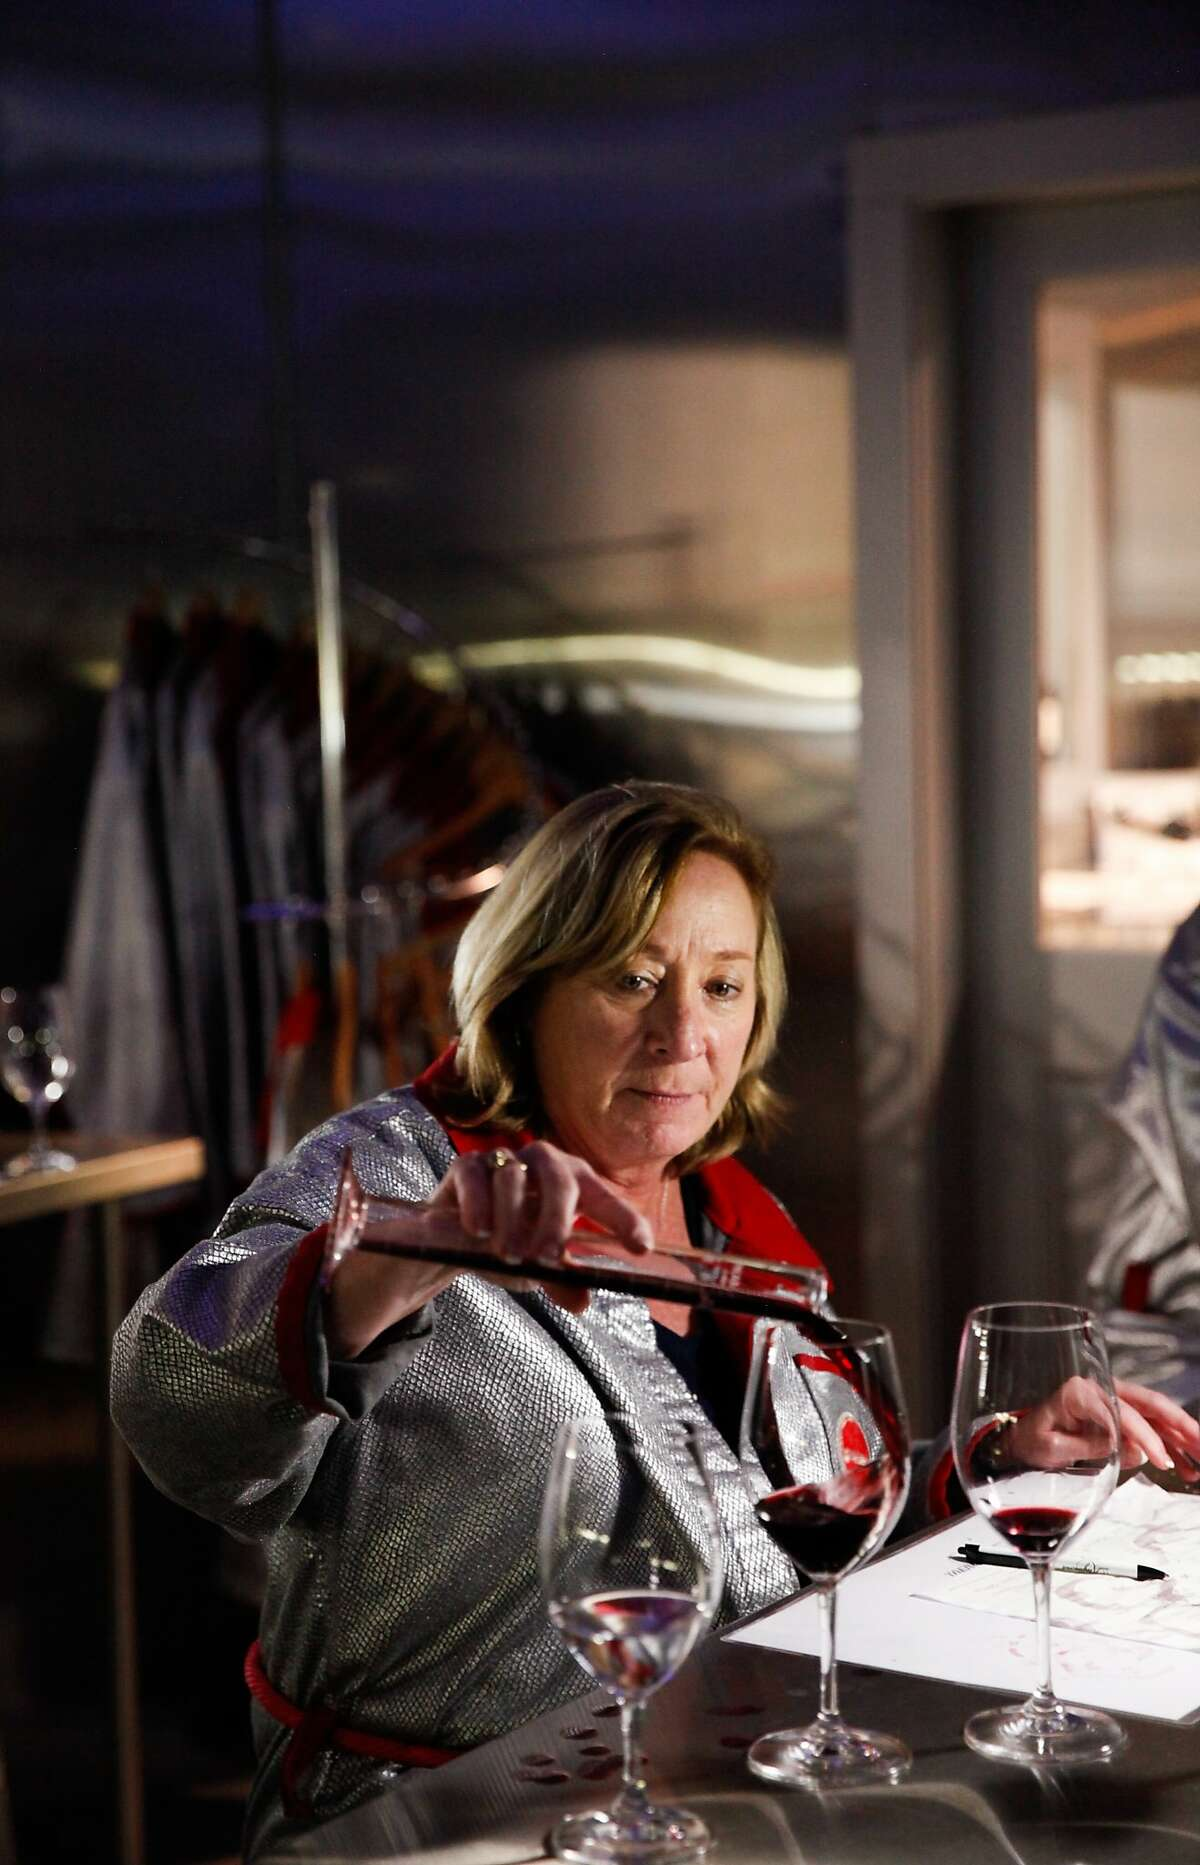 Sue Bezemes, of Dublin, Ohio, blends wines during the Winemaker for a Day class at Raymond Vineyard in St. Helena, Calif., on Monday, October 12, 2015.